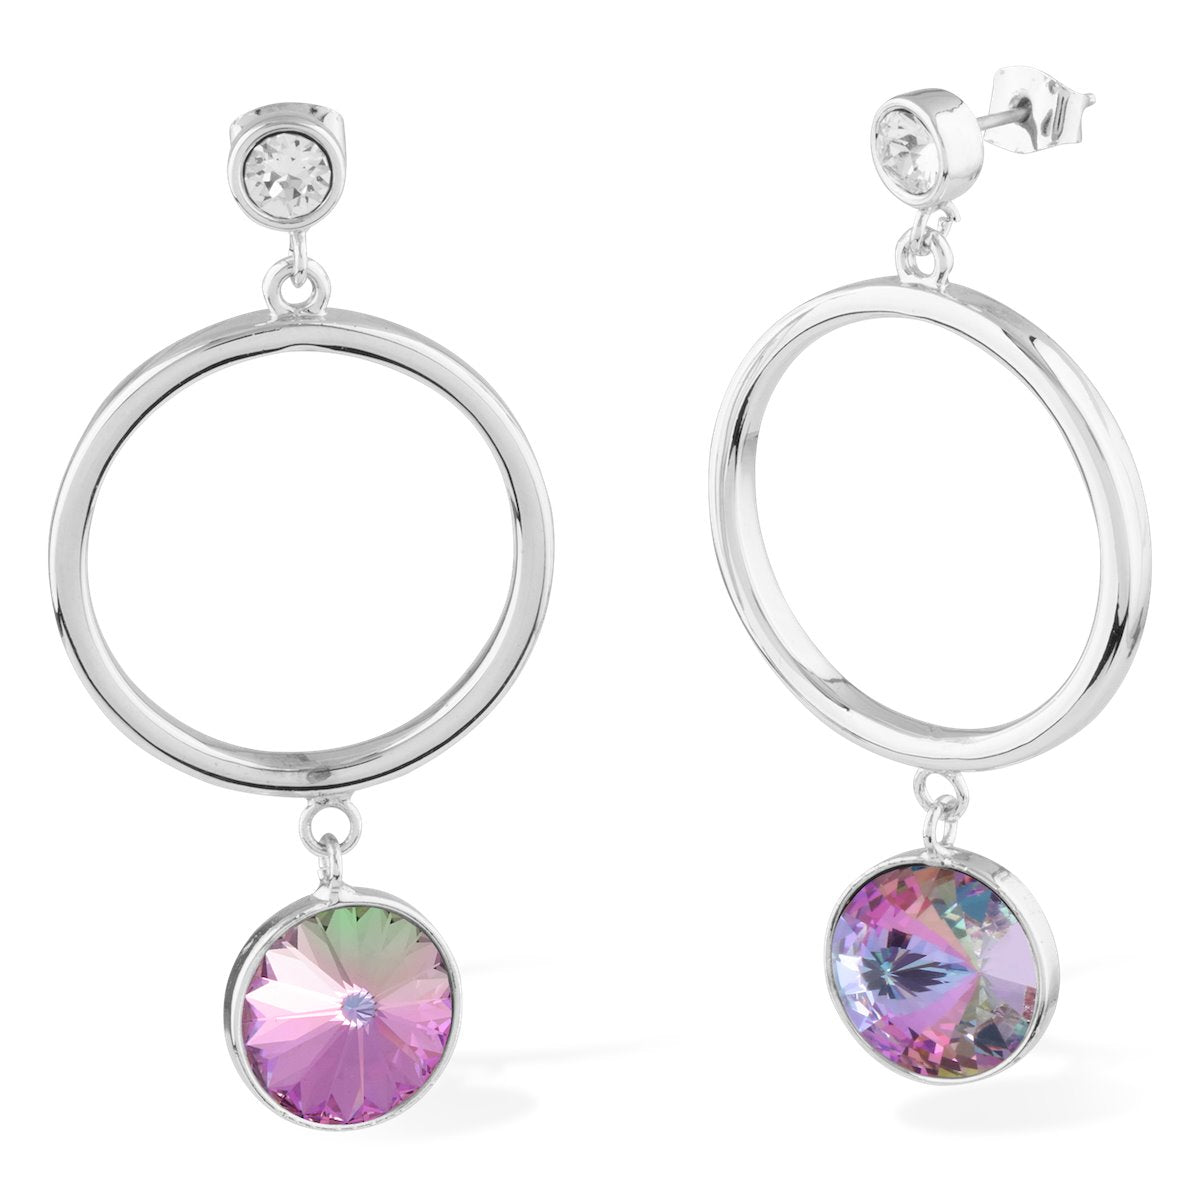 Apollo Earrings Forevercrystals Vitrail Light